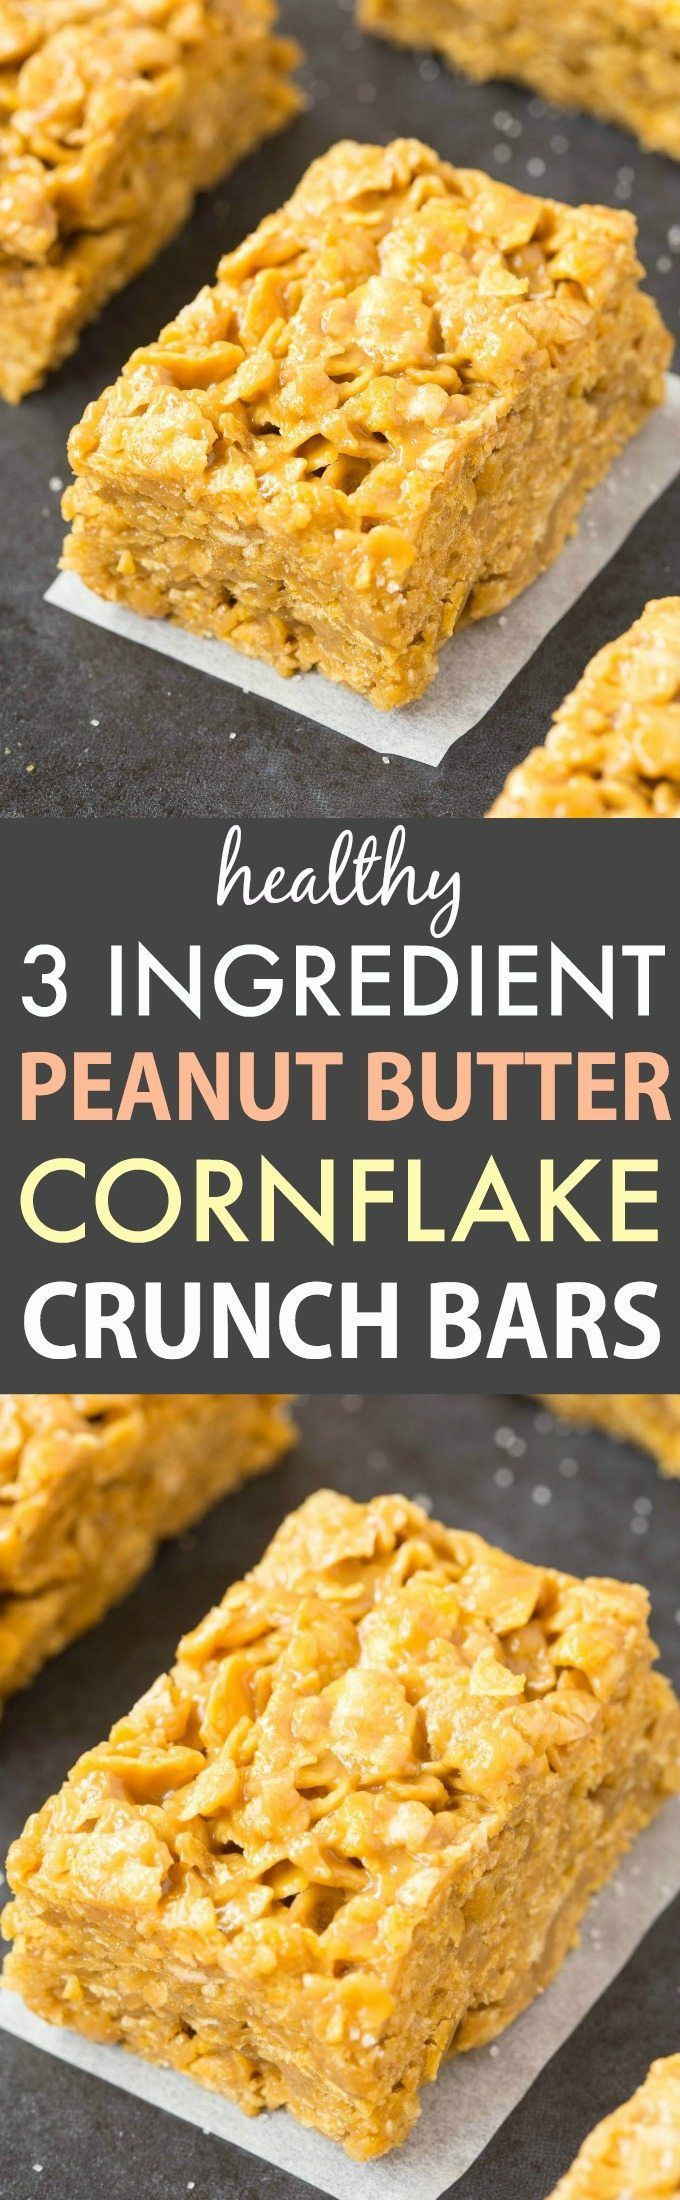 25+ best ideas about Corn flakes on Pinterest | Corn flake ...